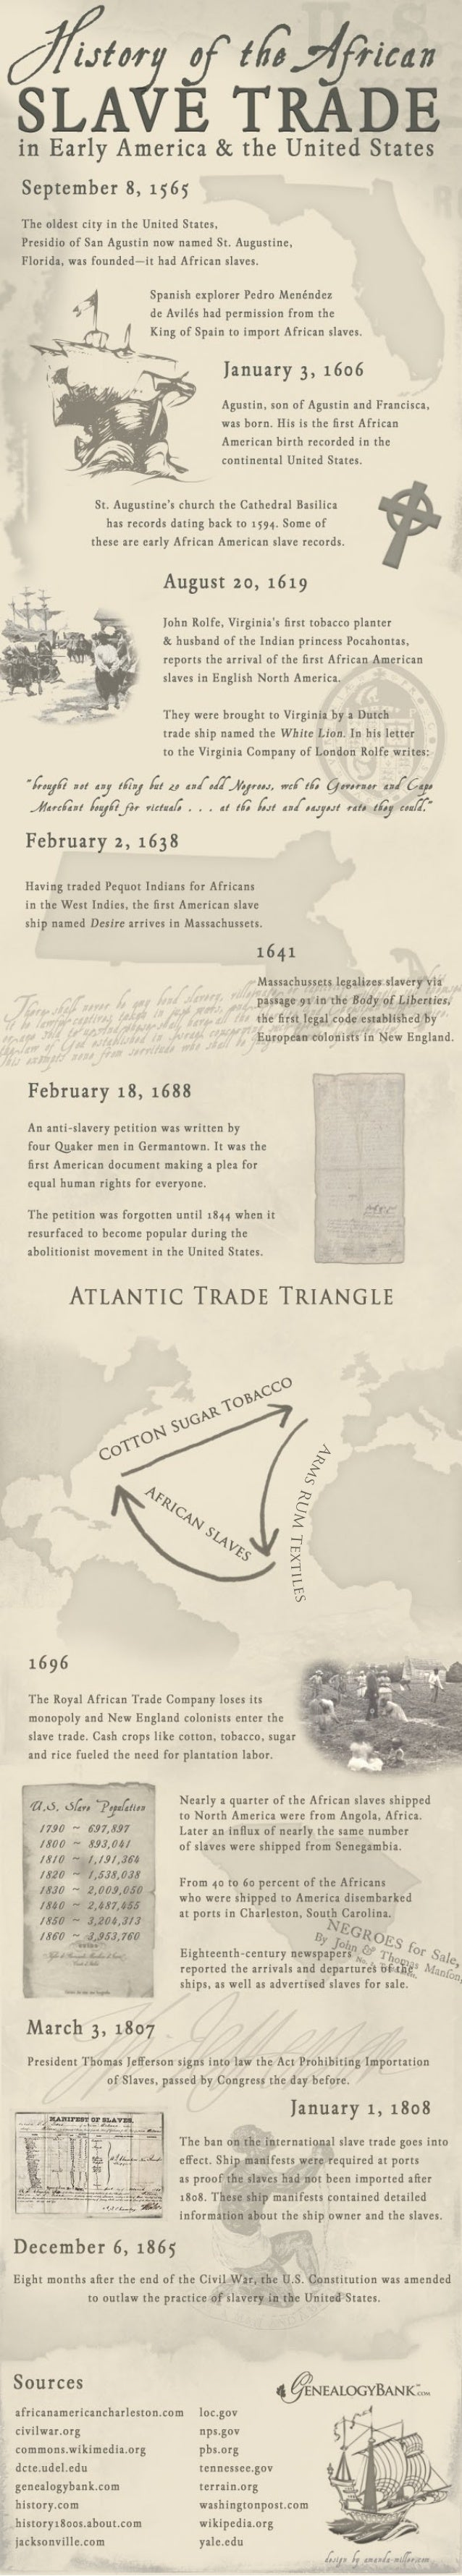 An introduction to the history and the issue of african slave trade to the america